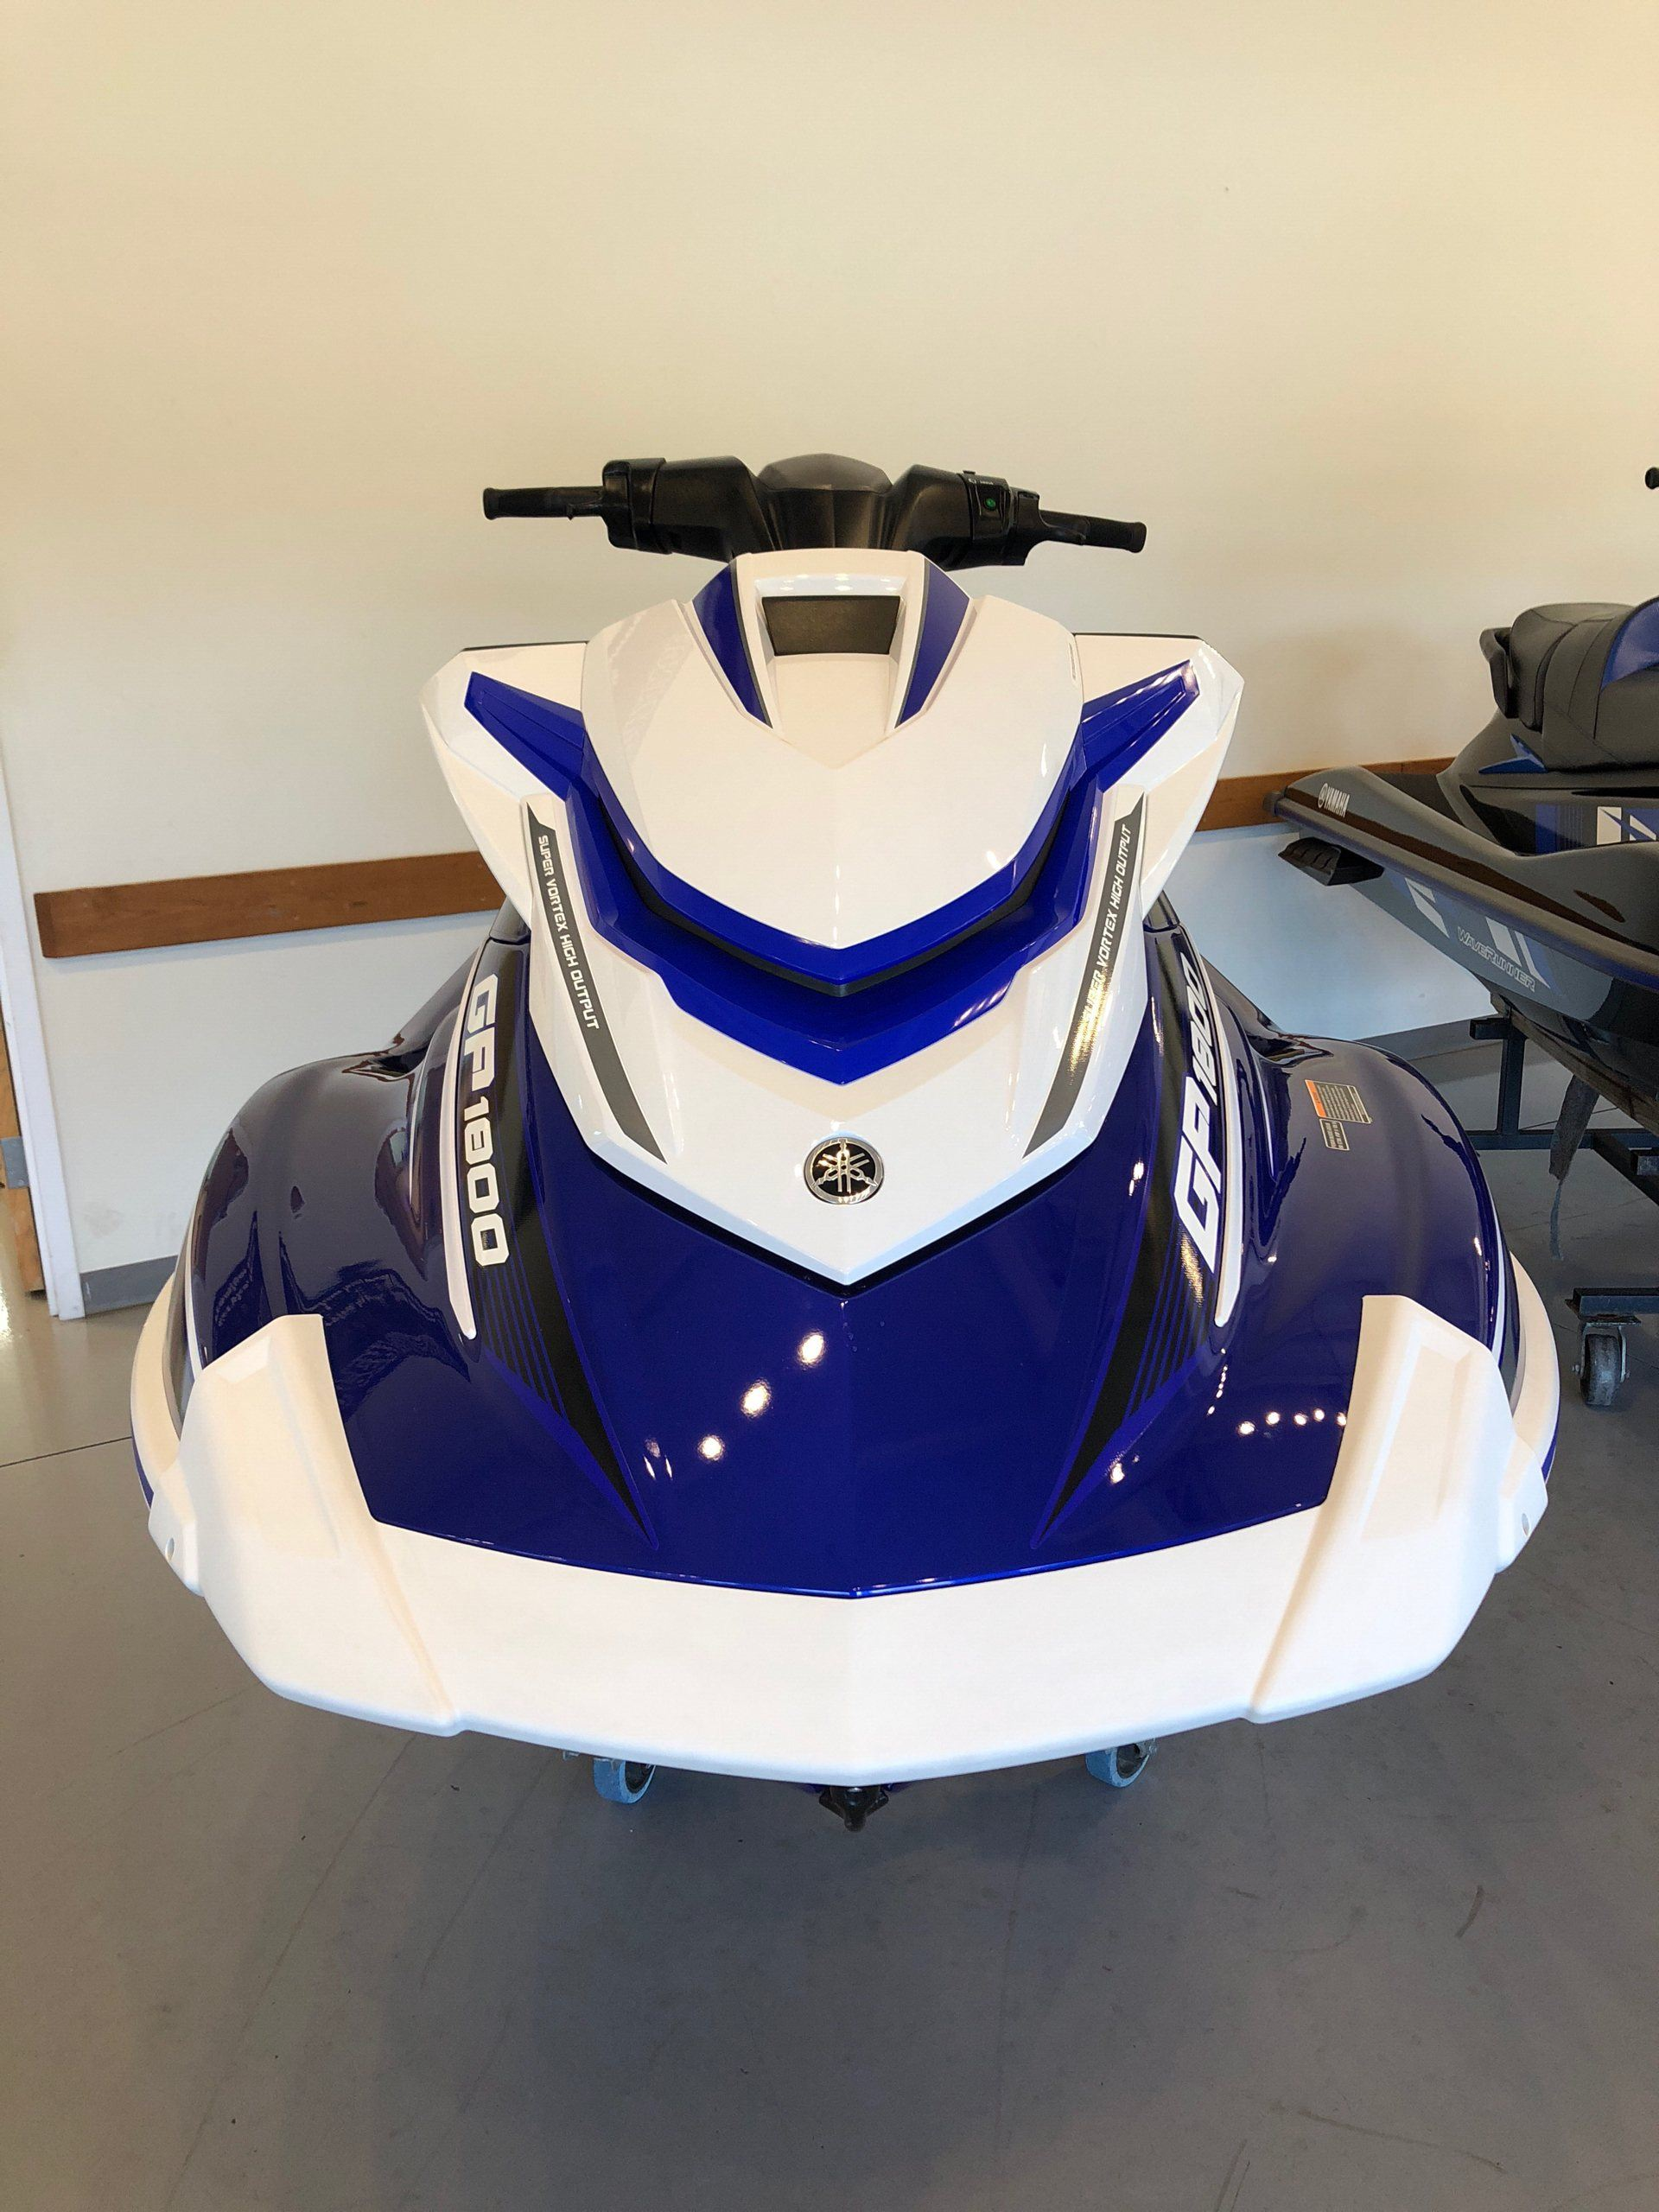 2018 Yamaha GP1800 in Mooresville, North Carolina